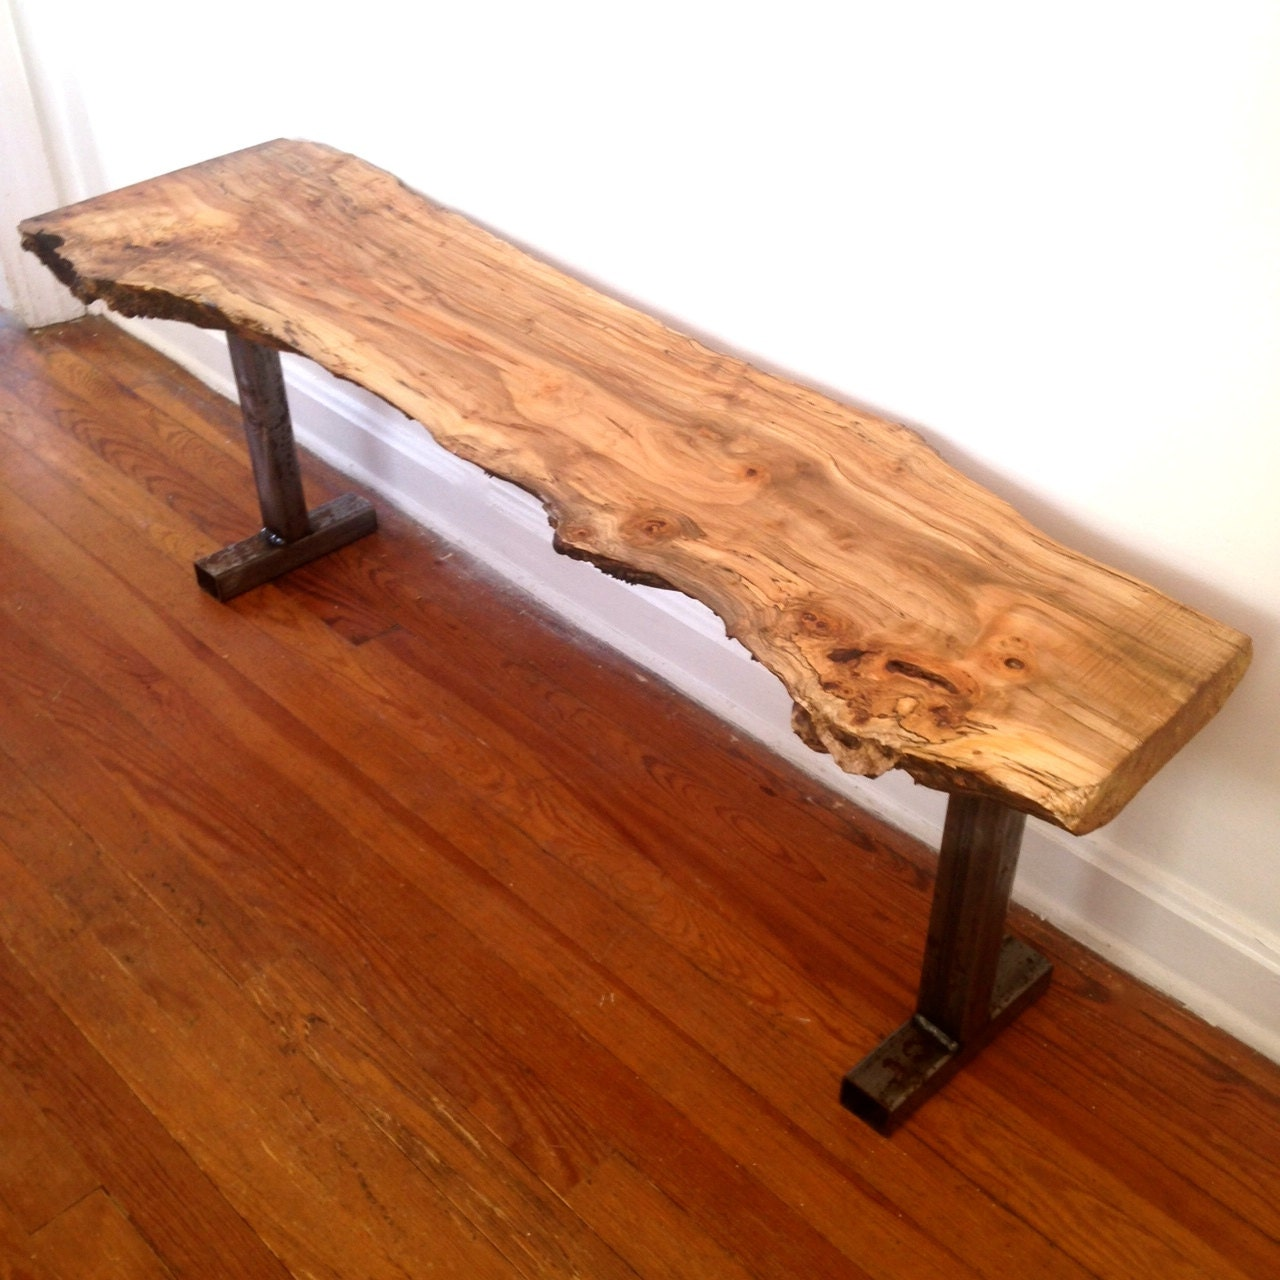 Reclaimed Live Edge Maple Coffee Table Bench Industrial: Live Edge Wood Bench Maple Bench Reclaimed Steel Base